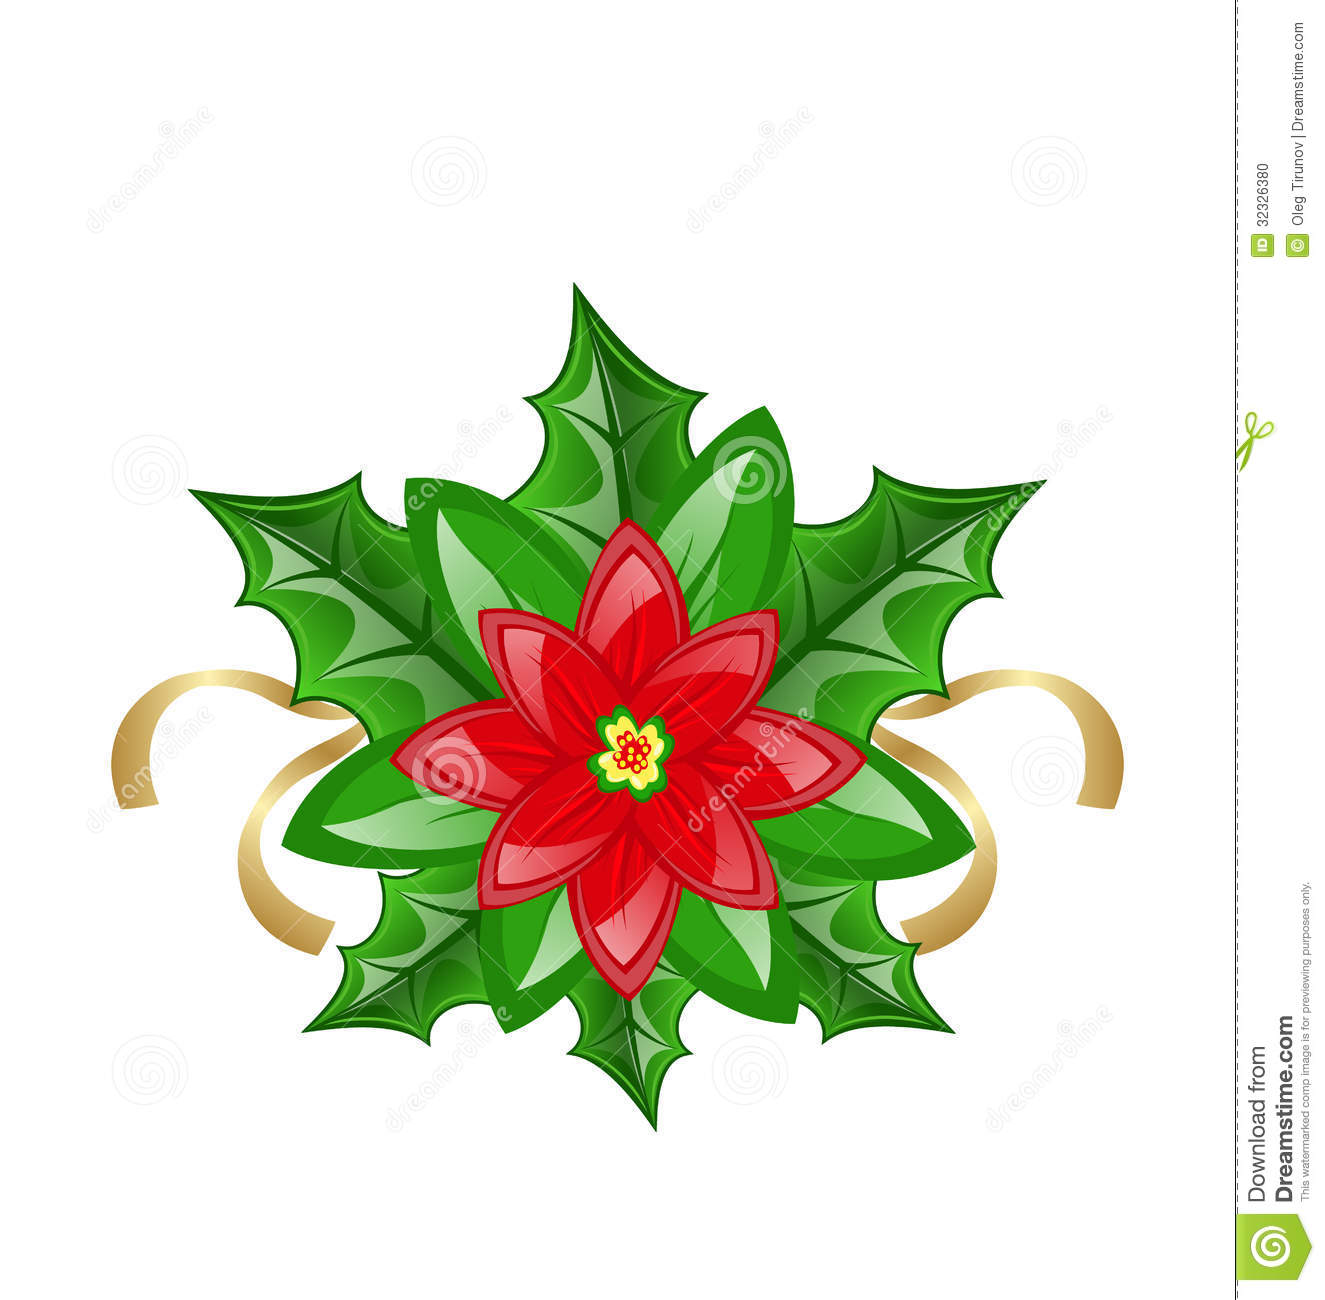 Flower poinsettia for christmas decoration stock vector for Decoration images